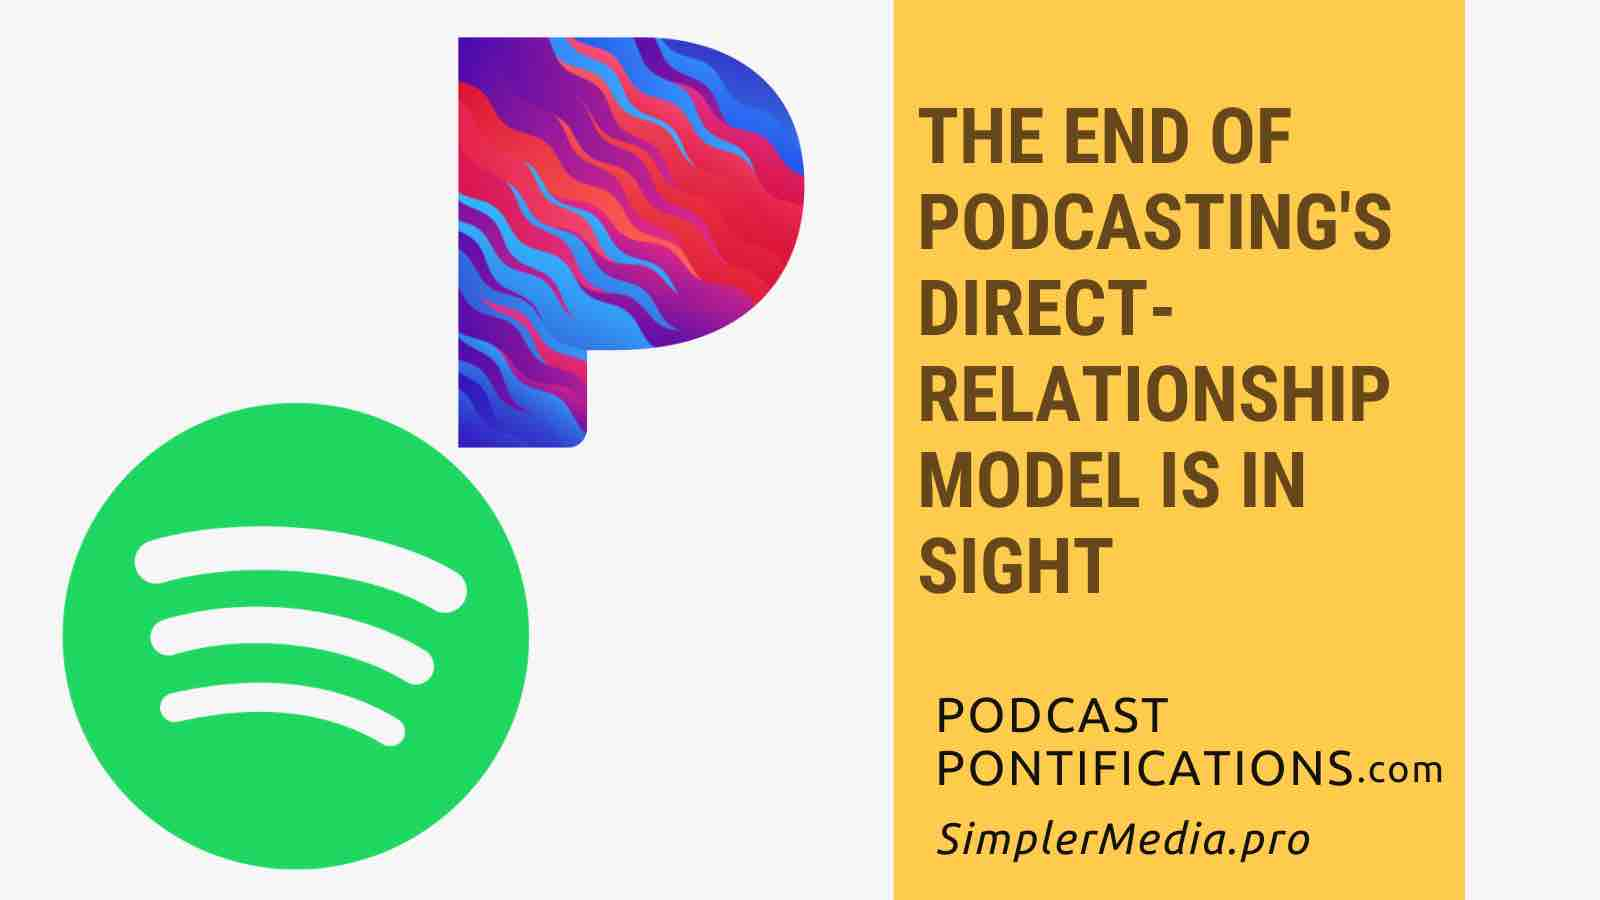 The End of Podcasting's Direct-Relationship Model Is In Sight